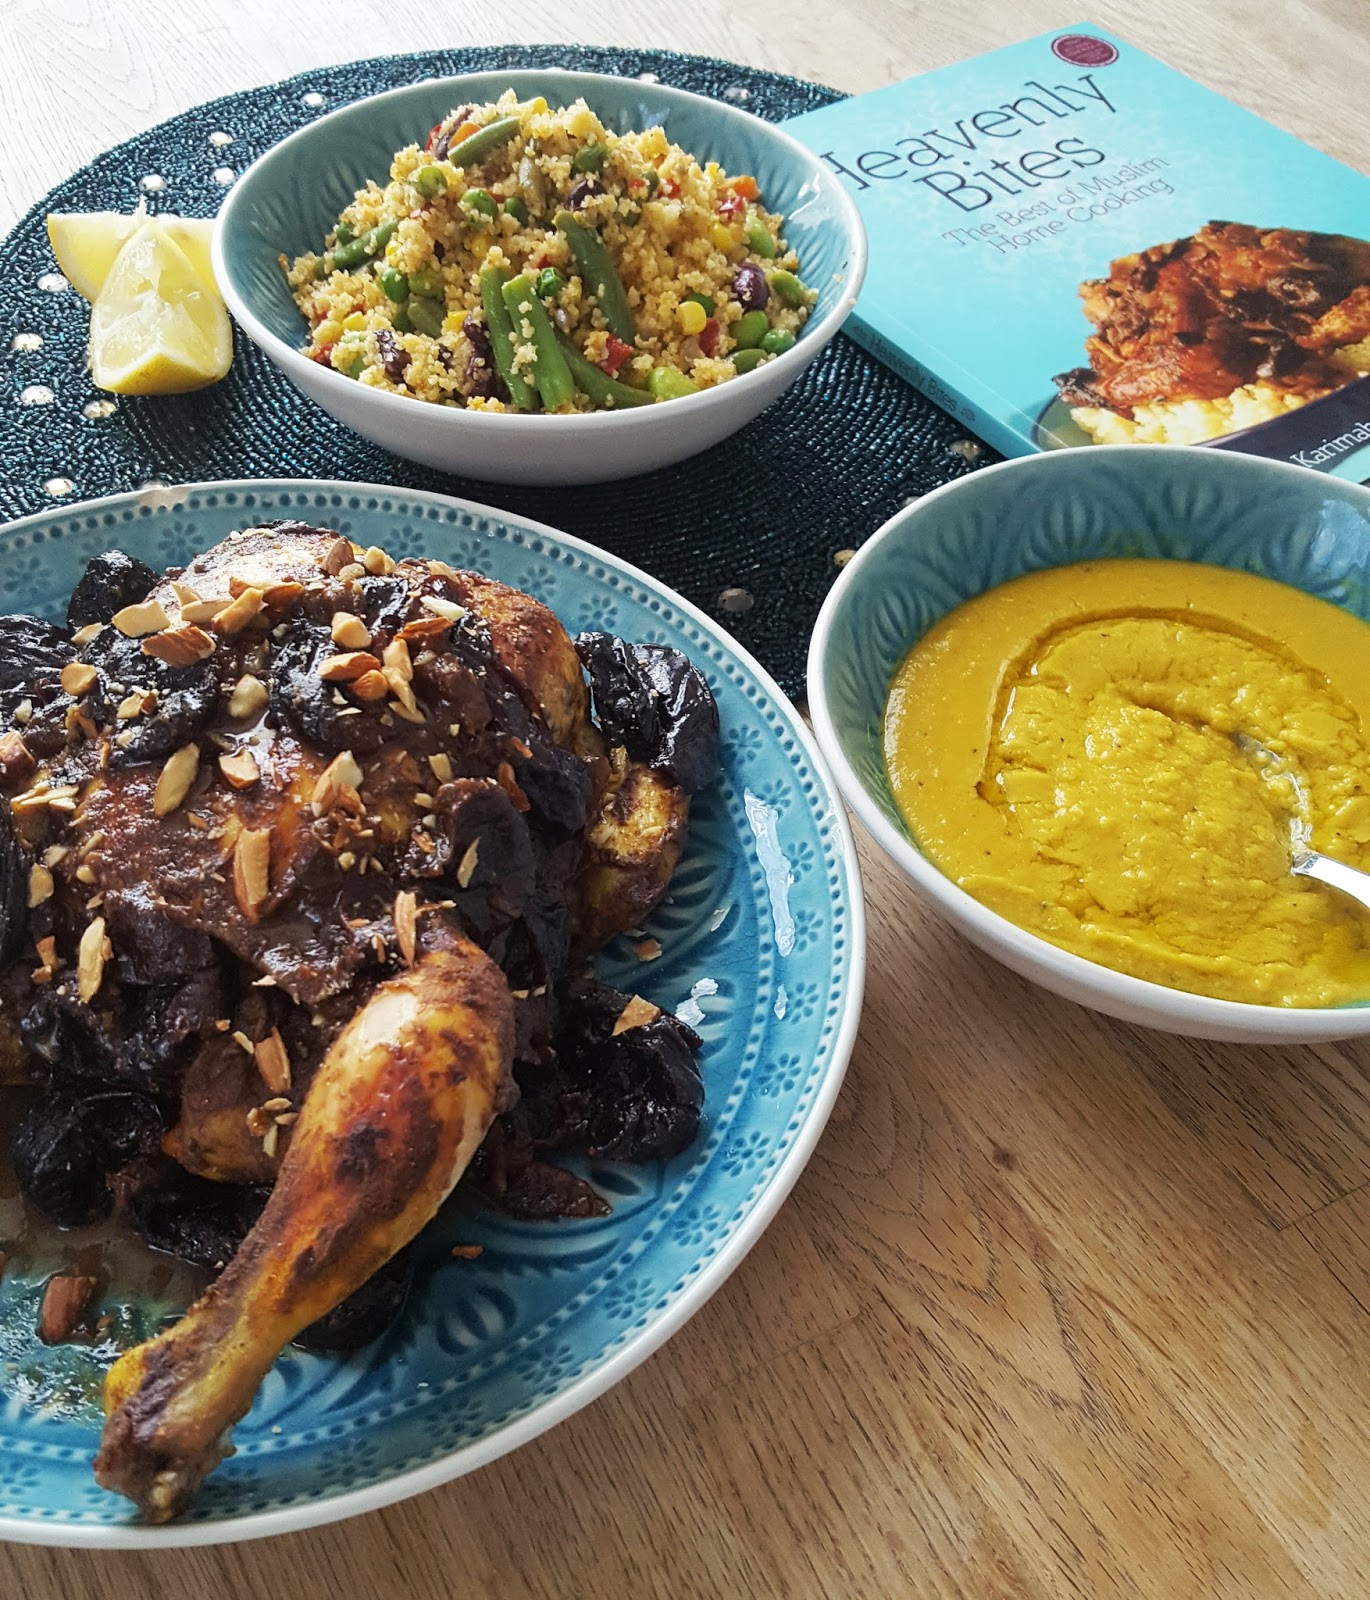 roast chicken, couscous, lentil soup